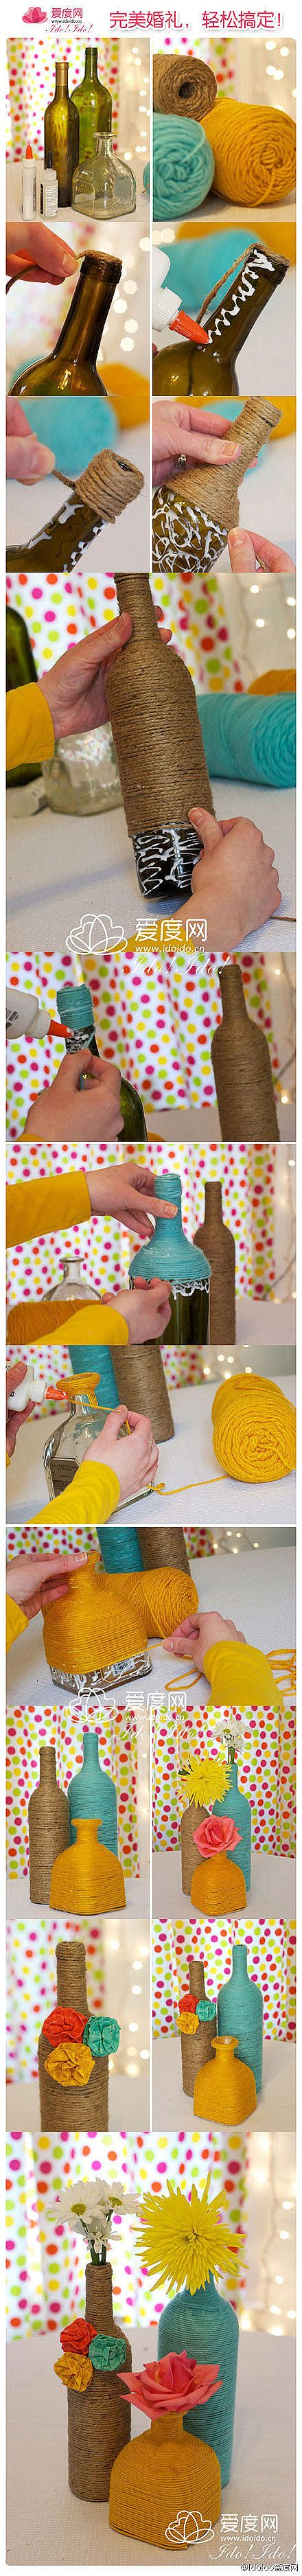 yarn around bottles!